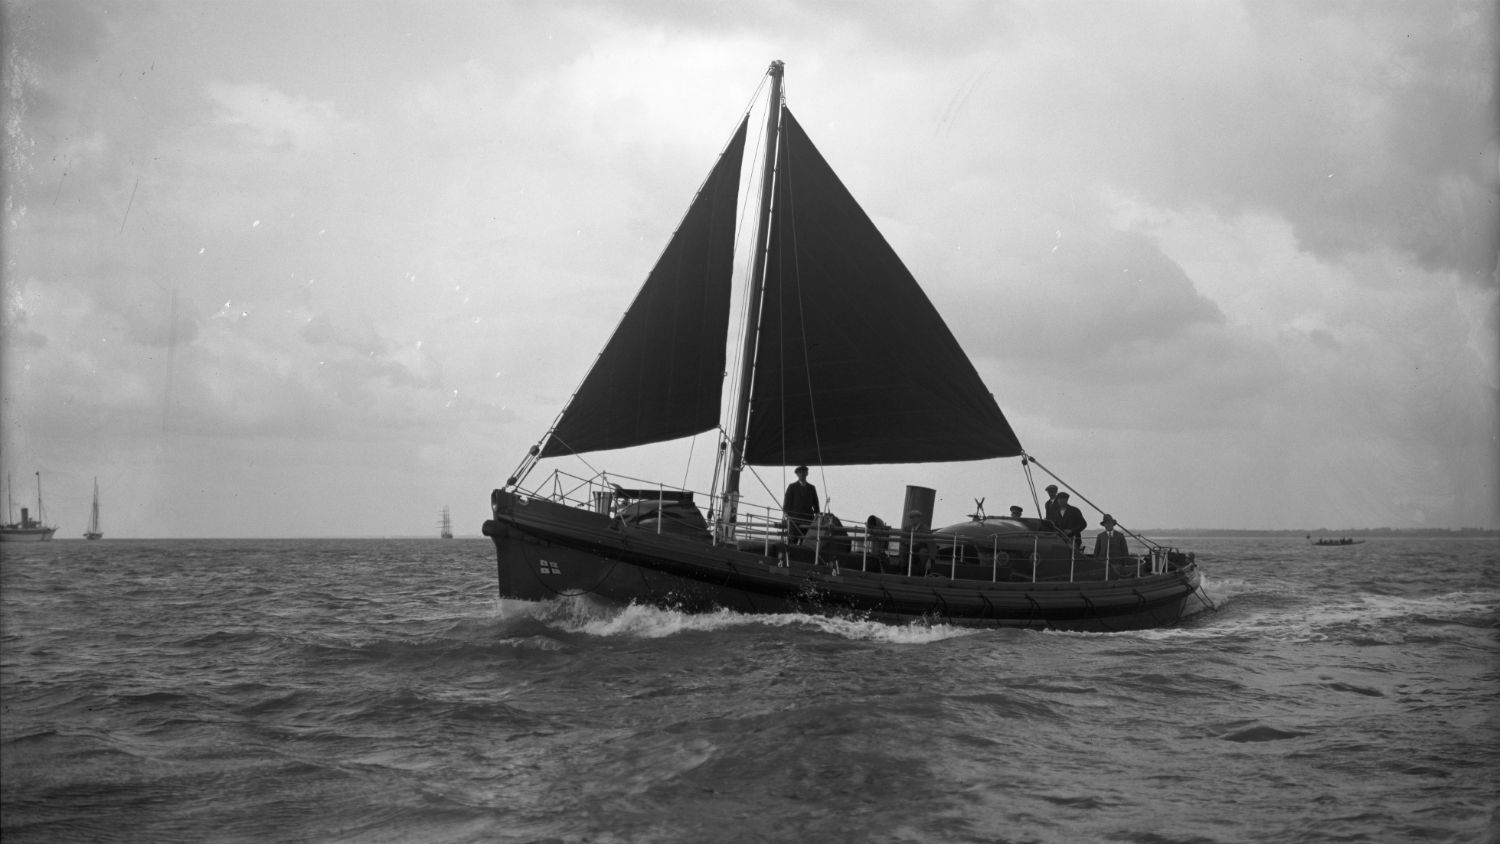 Black and white image of Newhaven lifeboat, Cecil and Lilian Philpott, while on trials